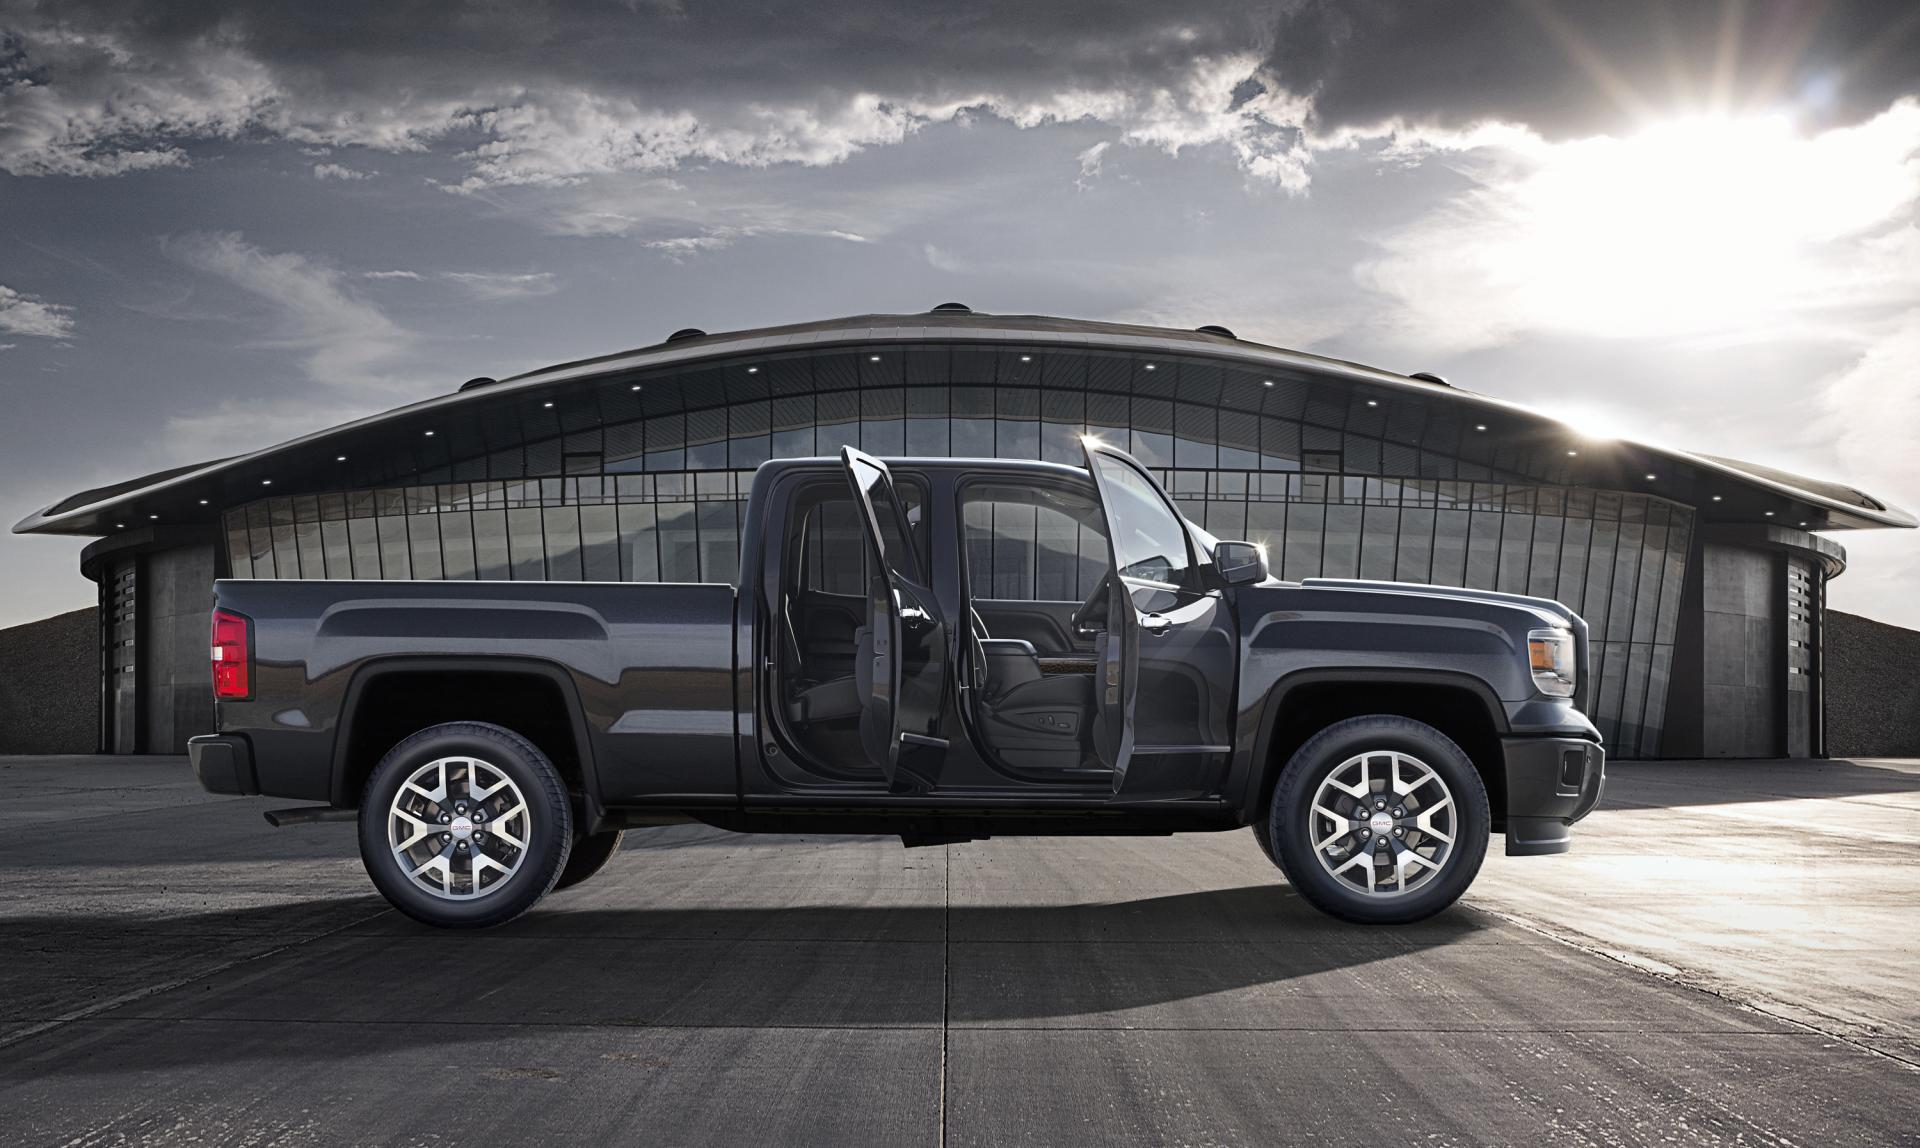 2015 Gmc Sierra Carbon Edition Wallpapers Hd Drivespark